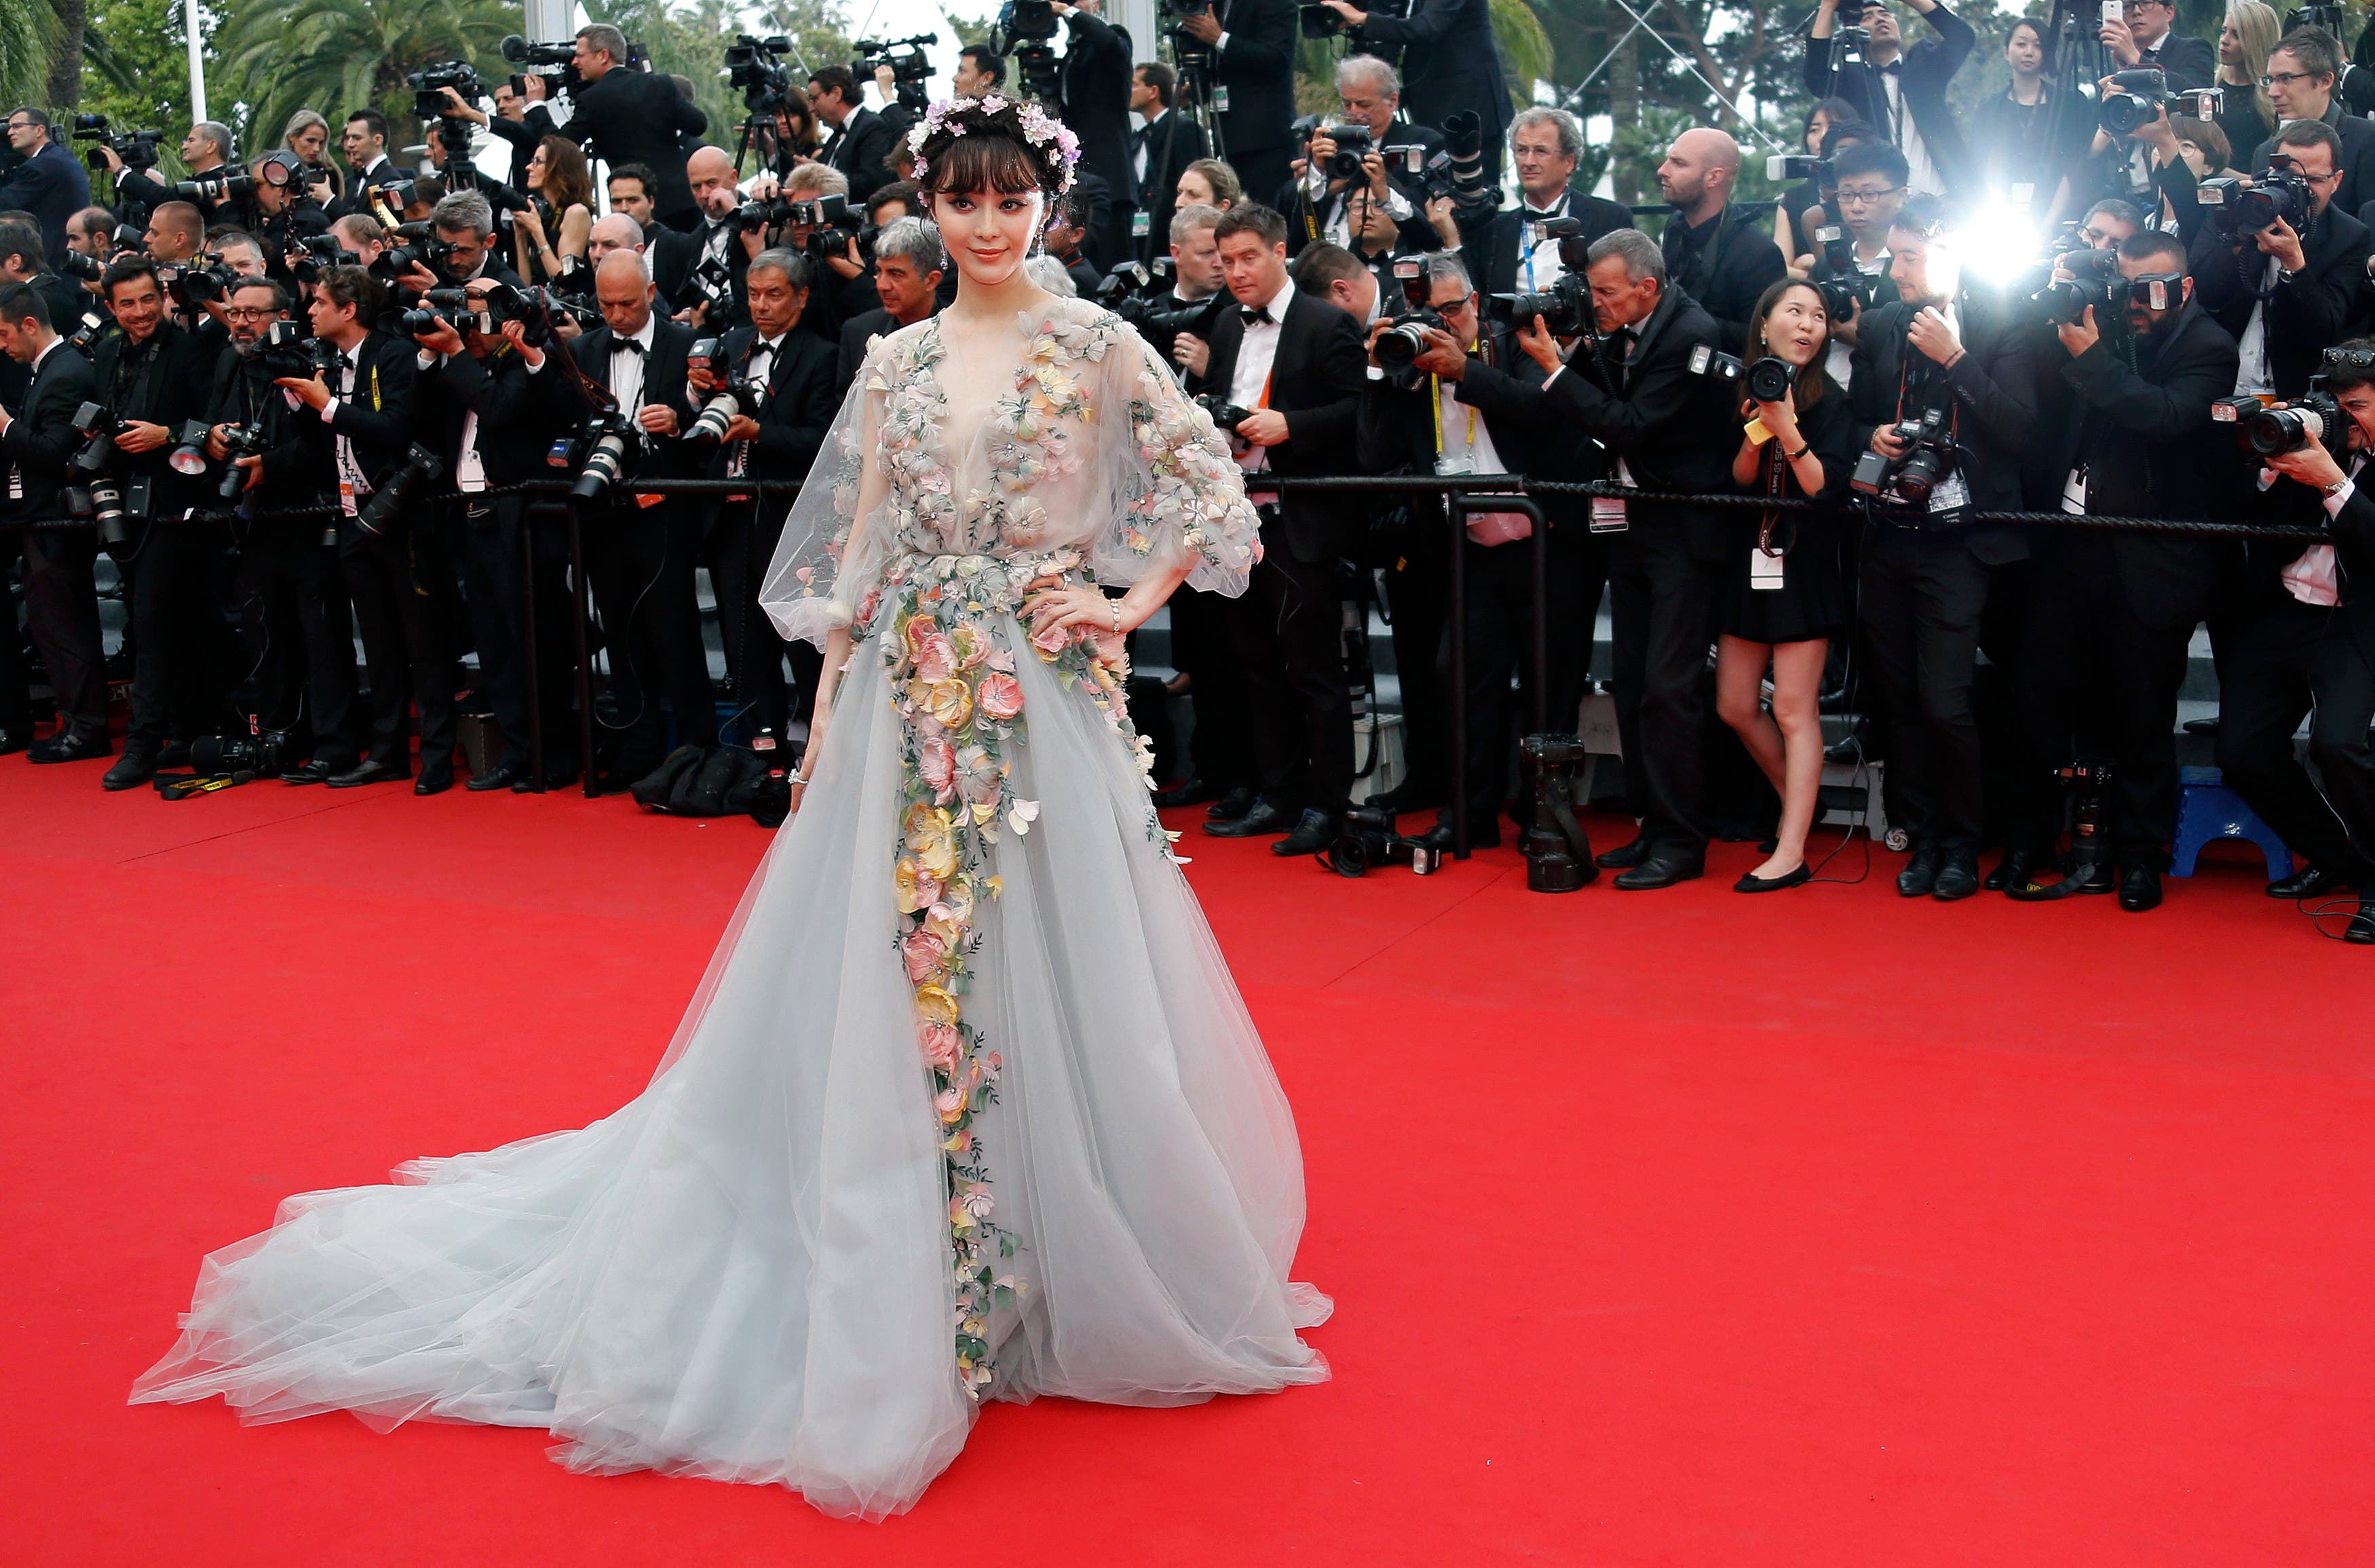 The 68th Cannes Film Festival